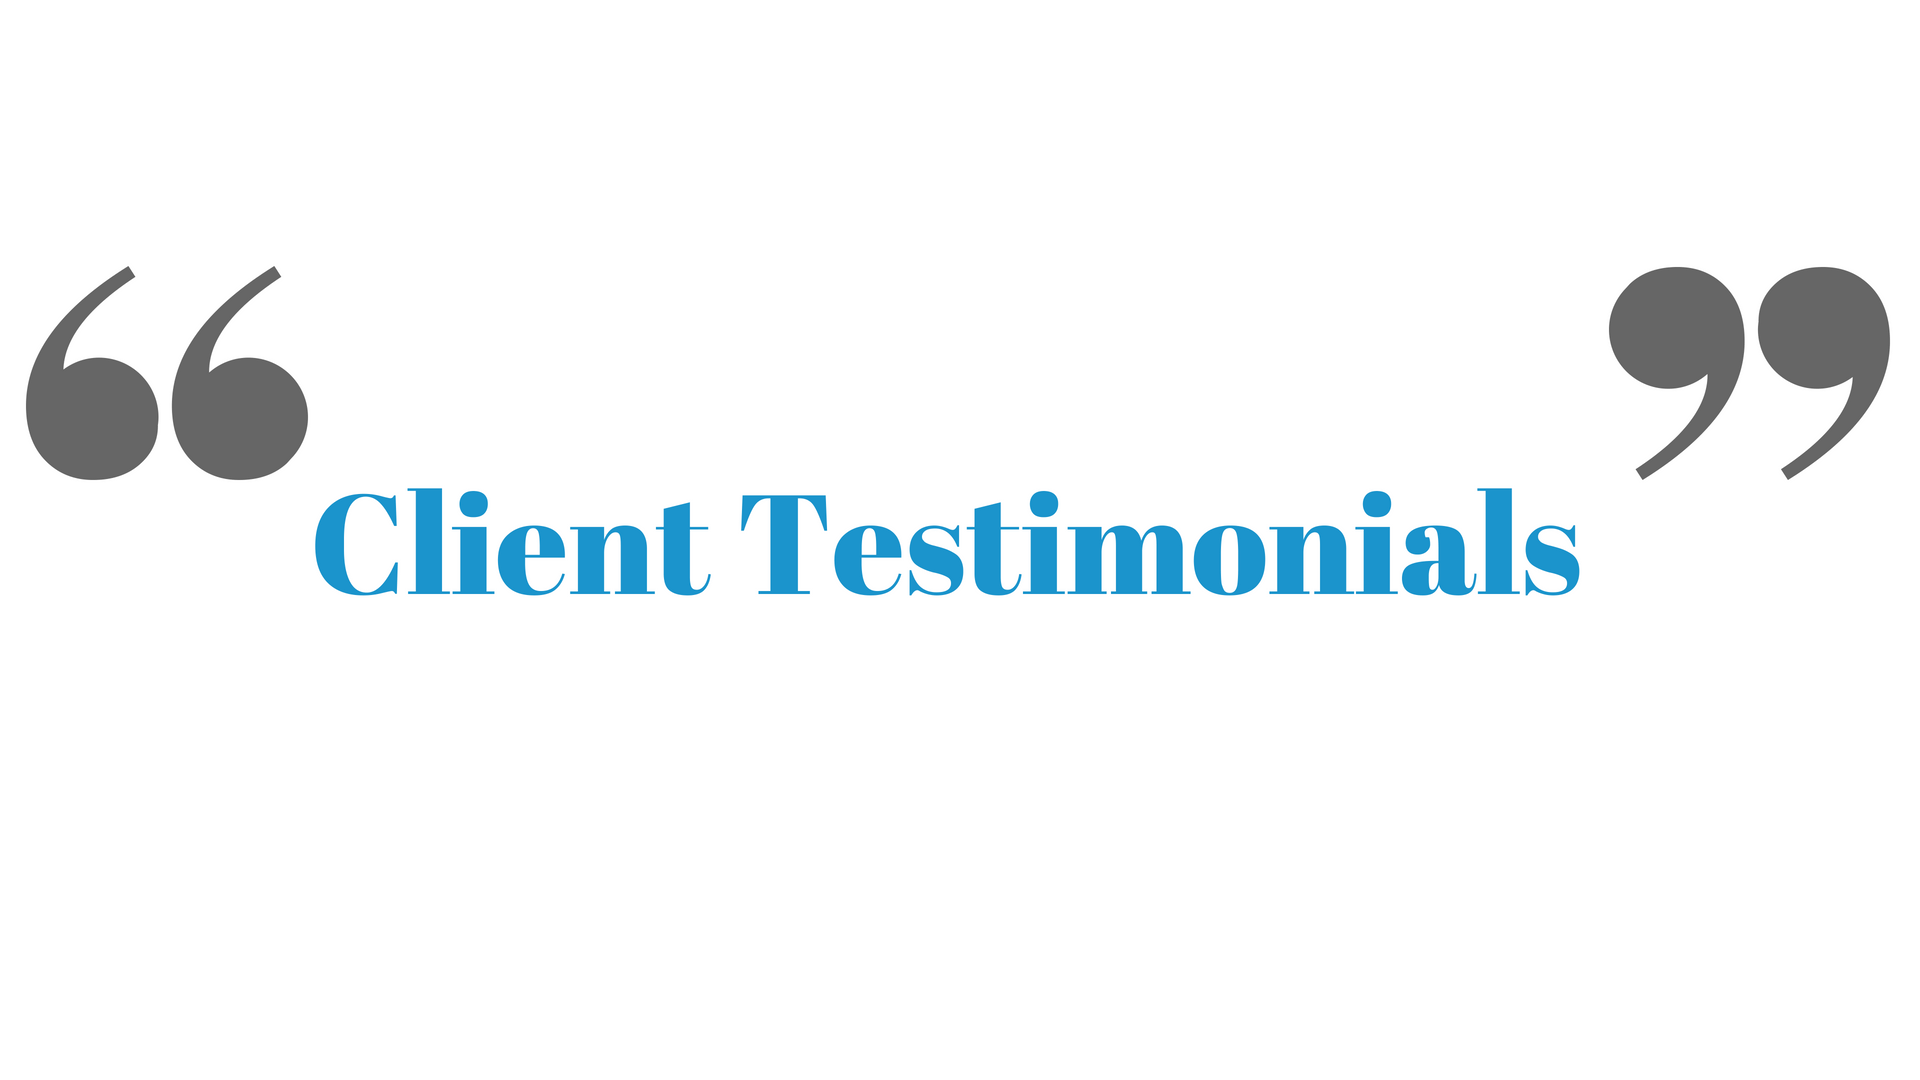 Driving Instructor near me | Finesse Driving Academy Testimonials